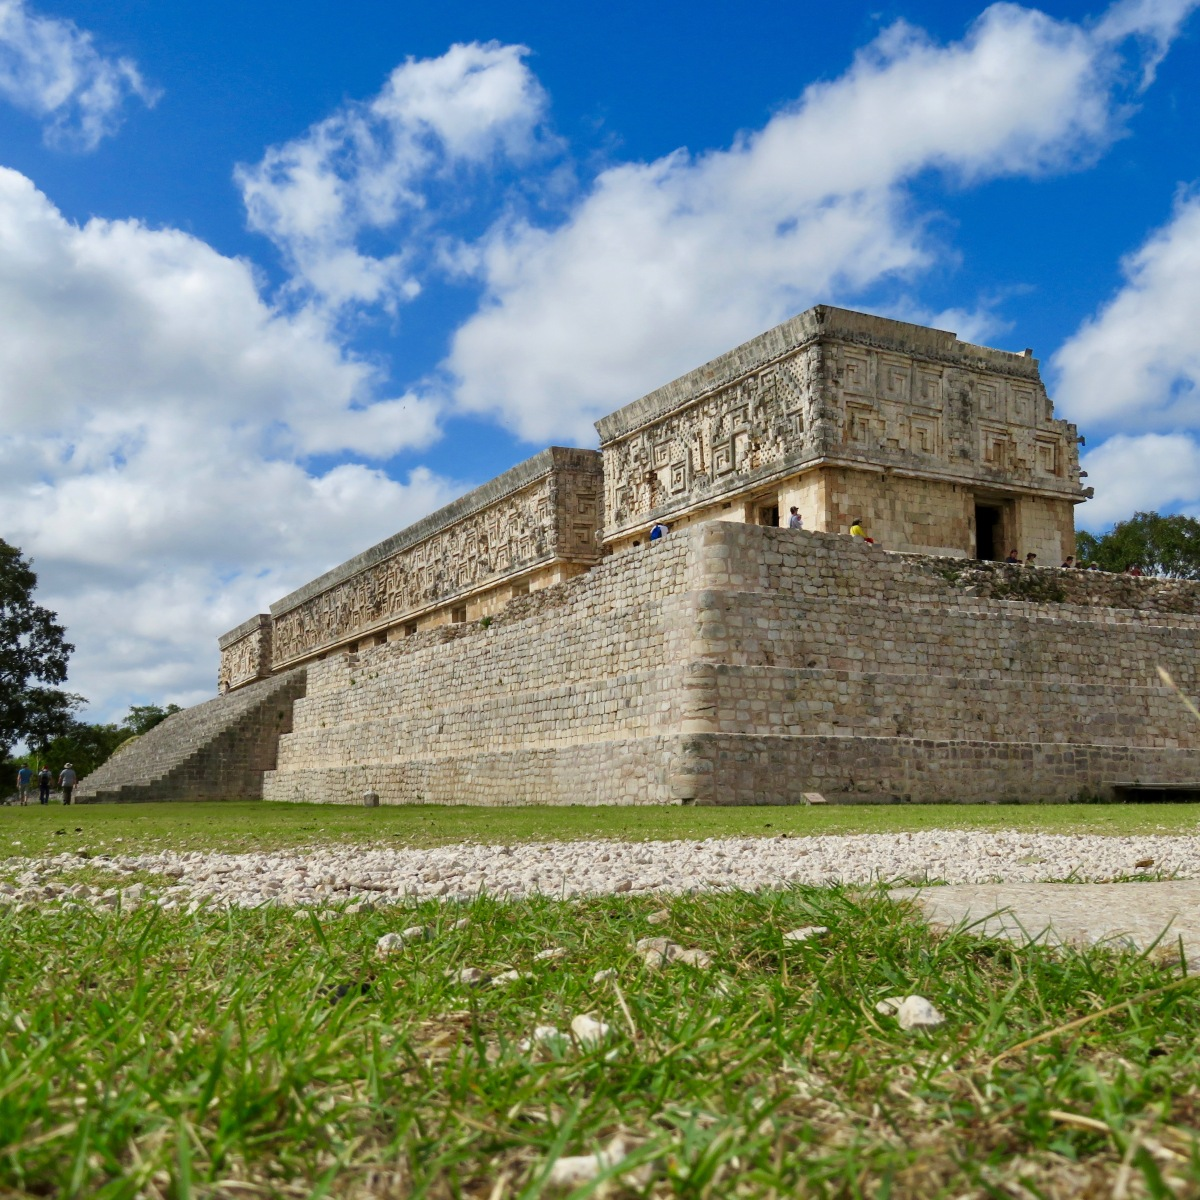 Uxmal: The Coolest, Closest Ancient City Out There